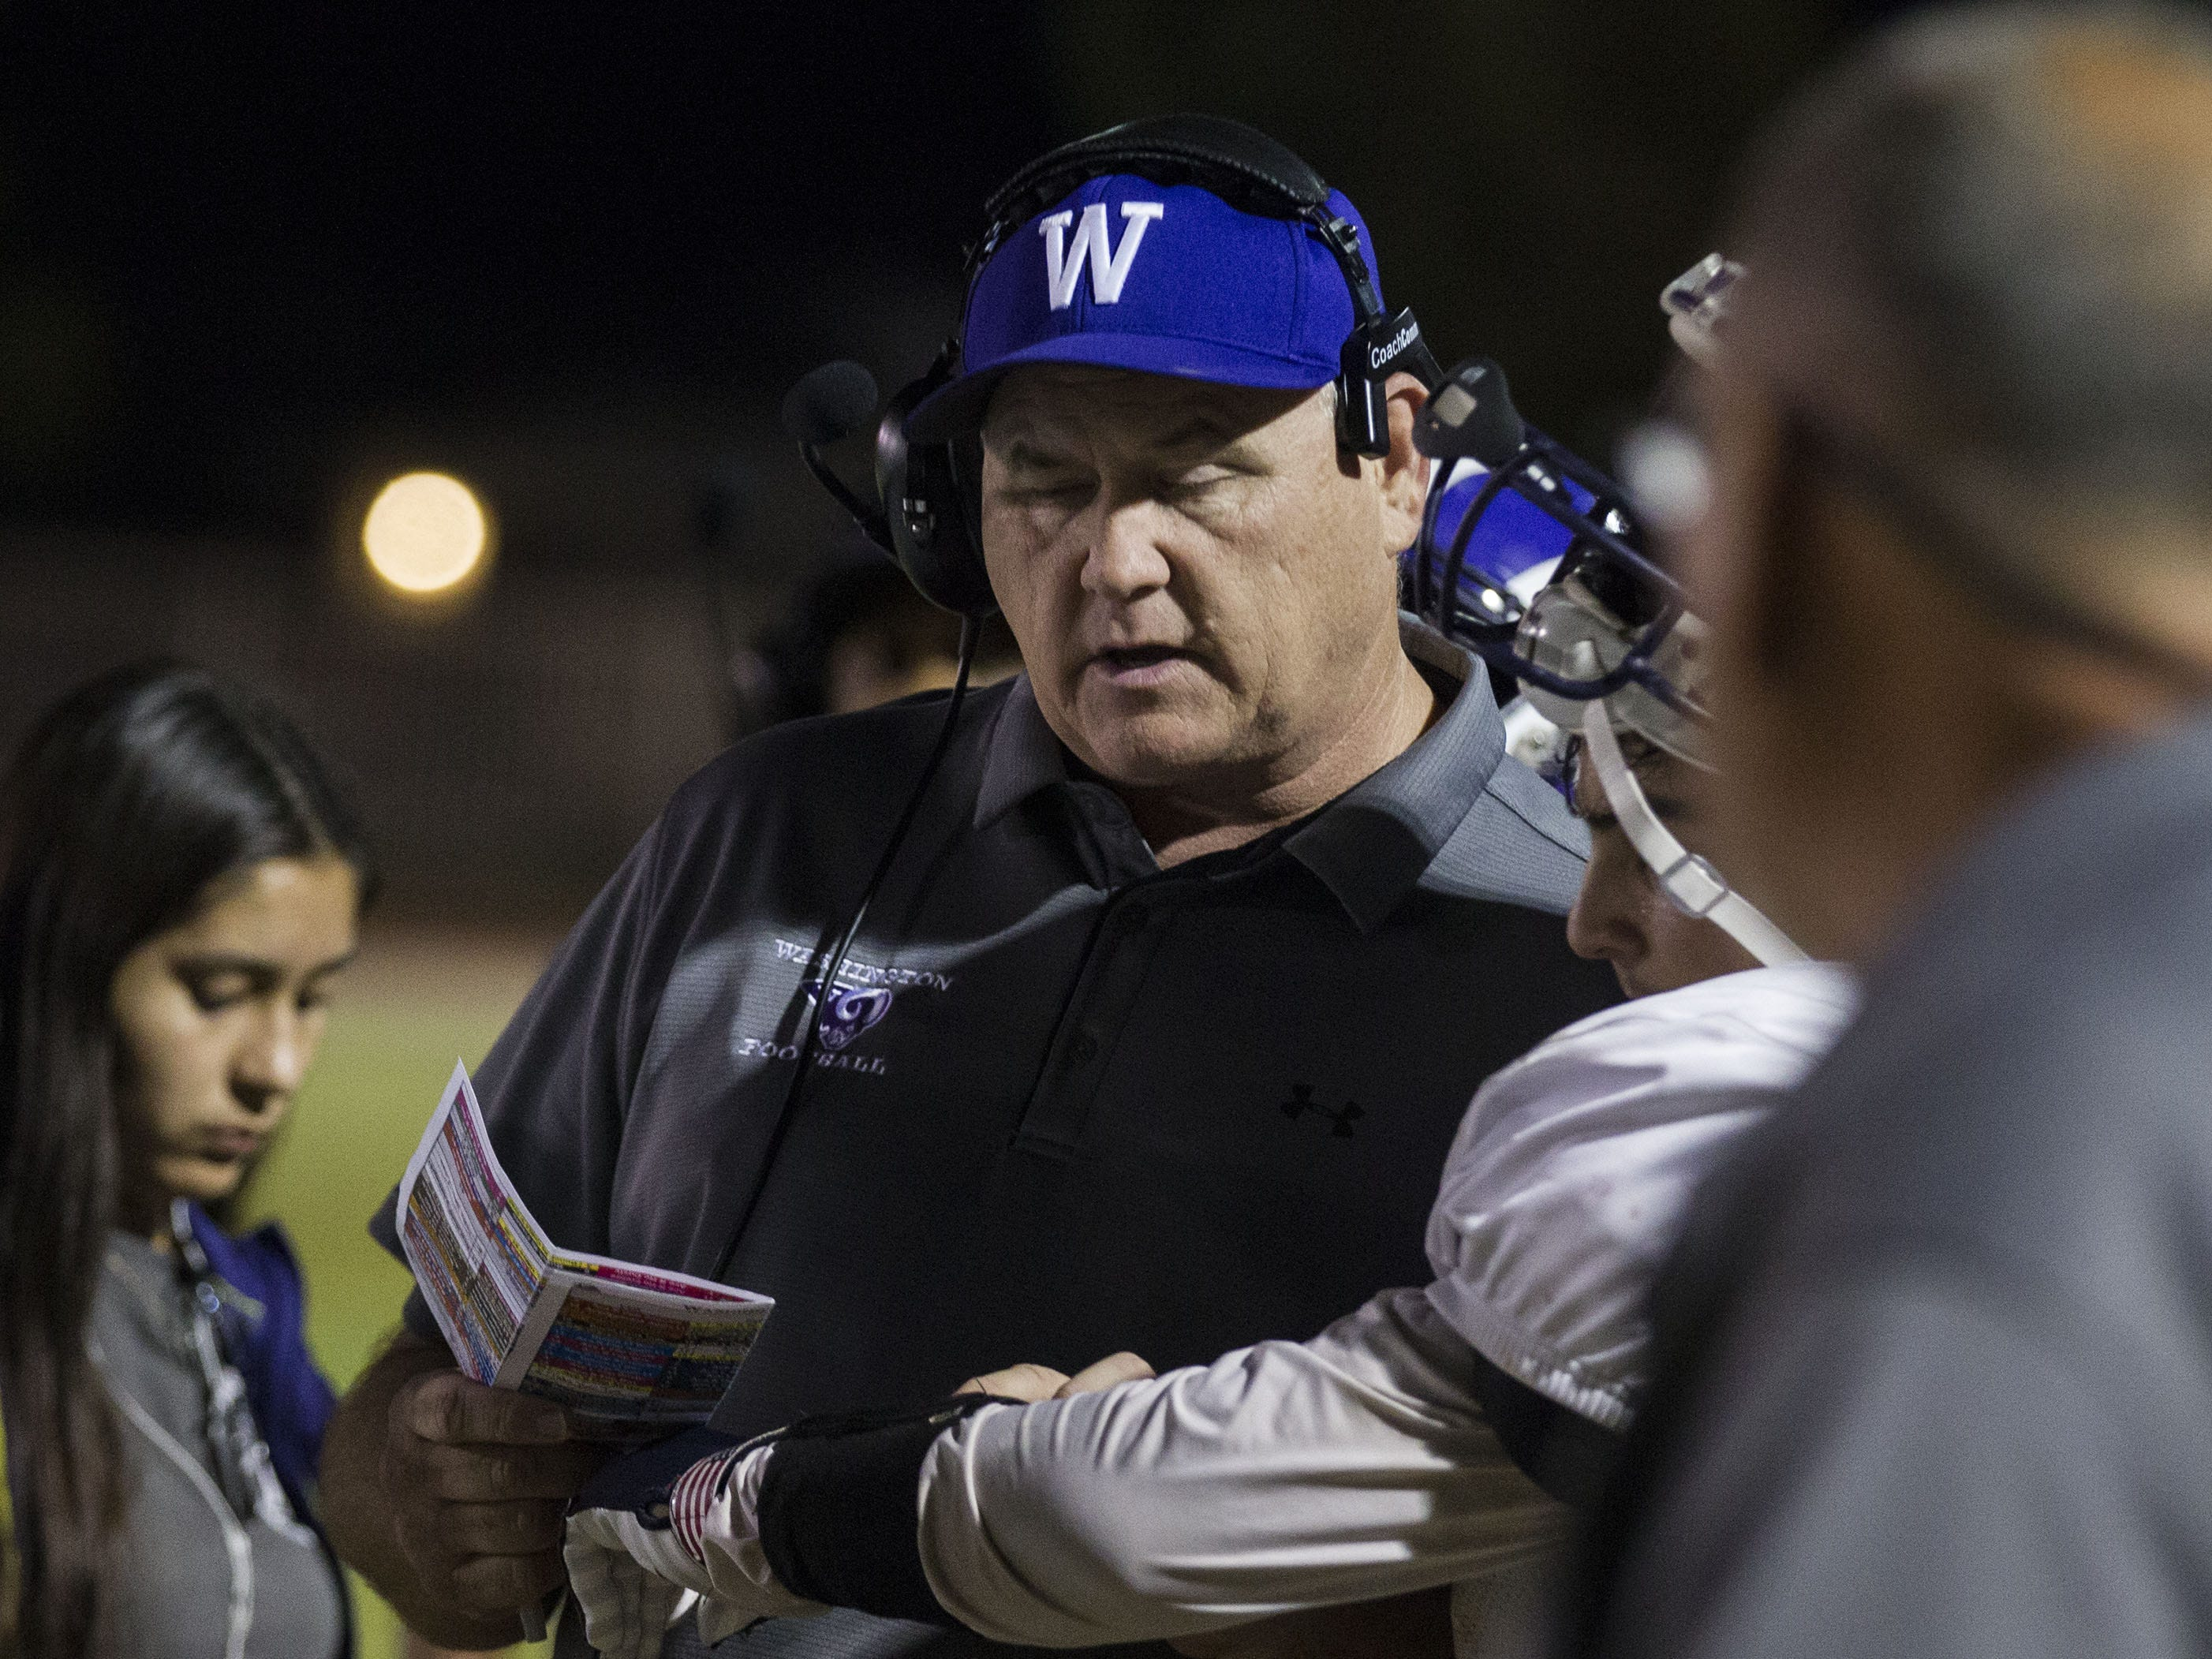 Washington coach Tim MayfieldÊtalks to his players during their game with Glendale in Glendale Friday, Oct. 5, 2018. #azhsfb